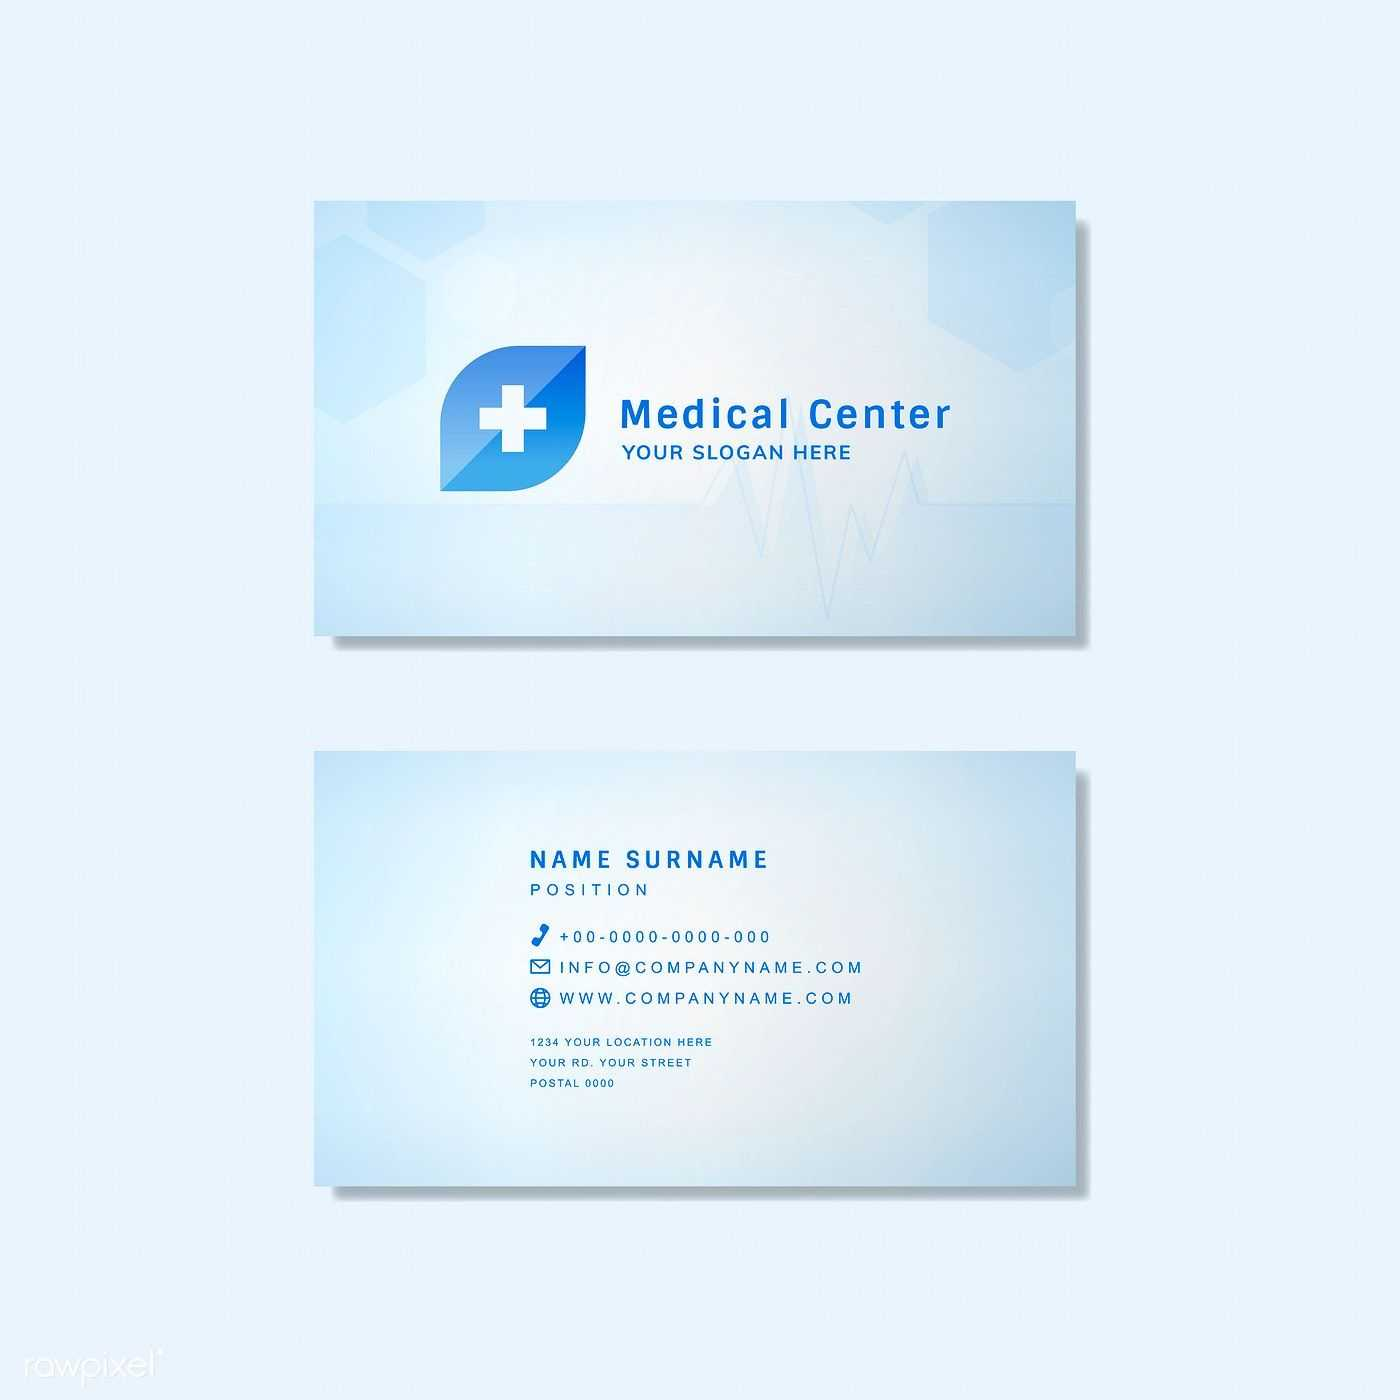 Medical Professional Business Card Design Mockup | Free Within Medical Business Cards Templates Free